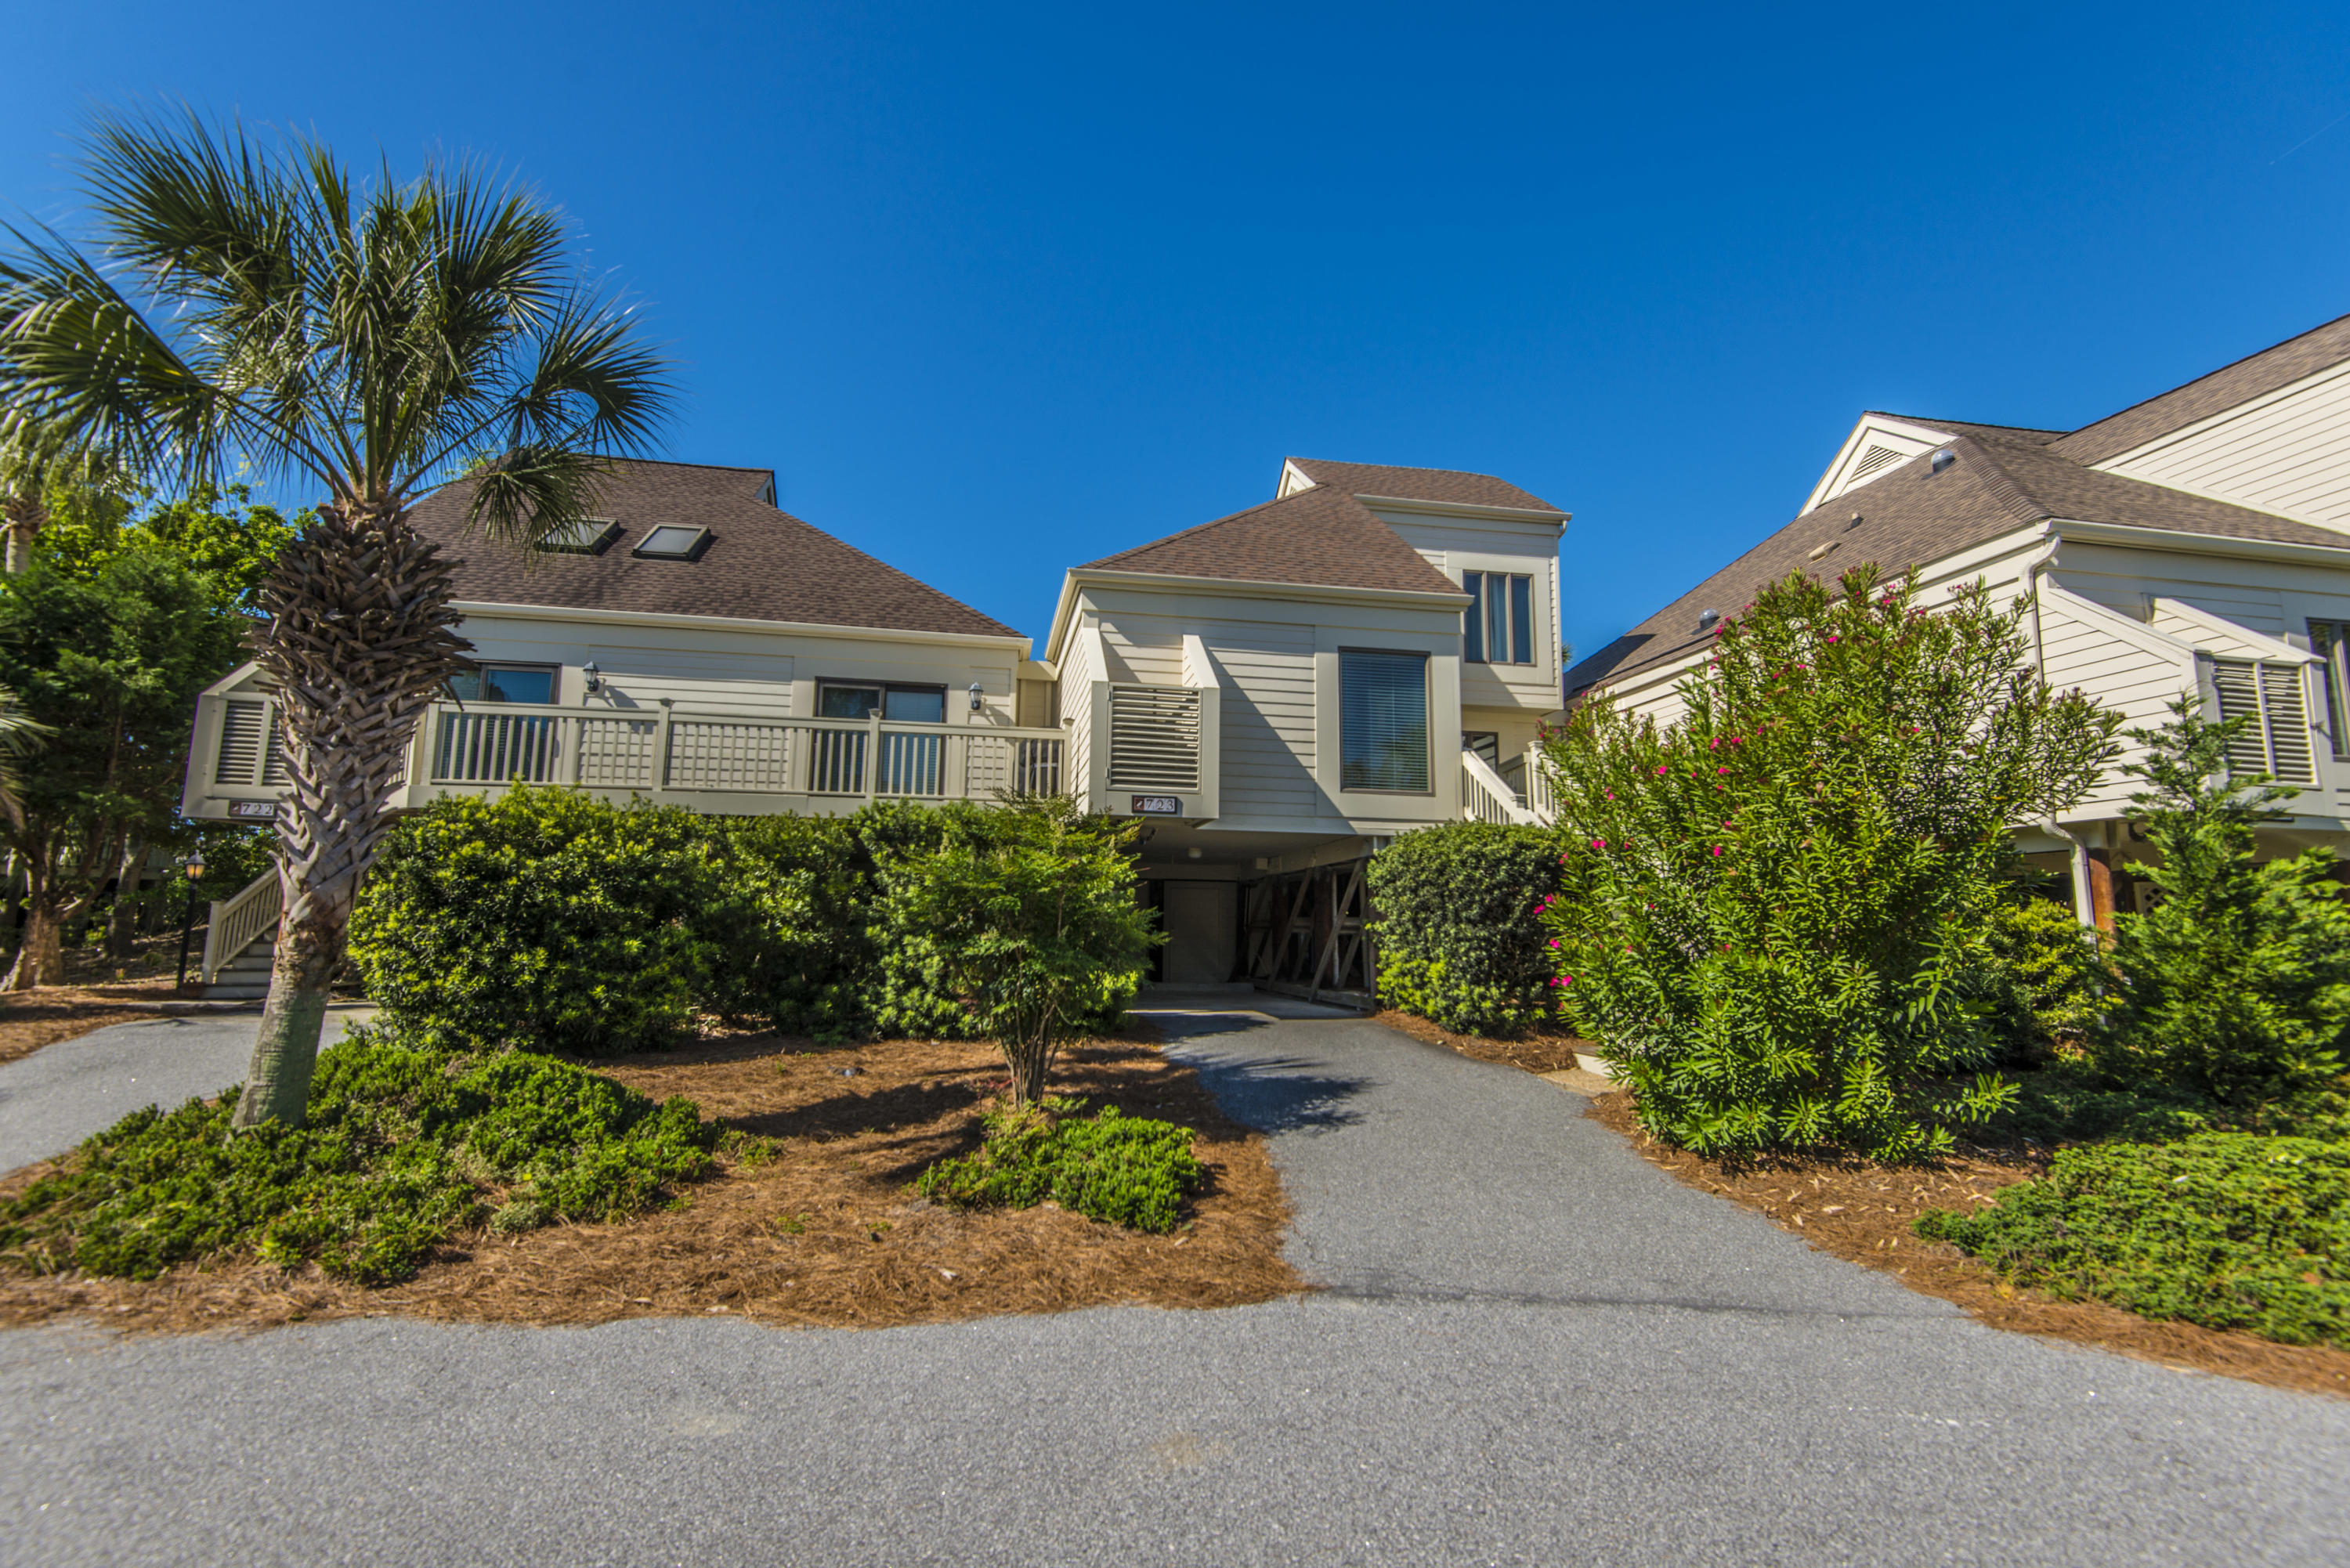 723 Spinnaker Beachhouse Johns Island, SC 29455